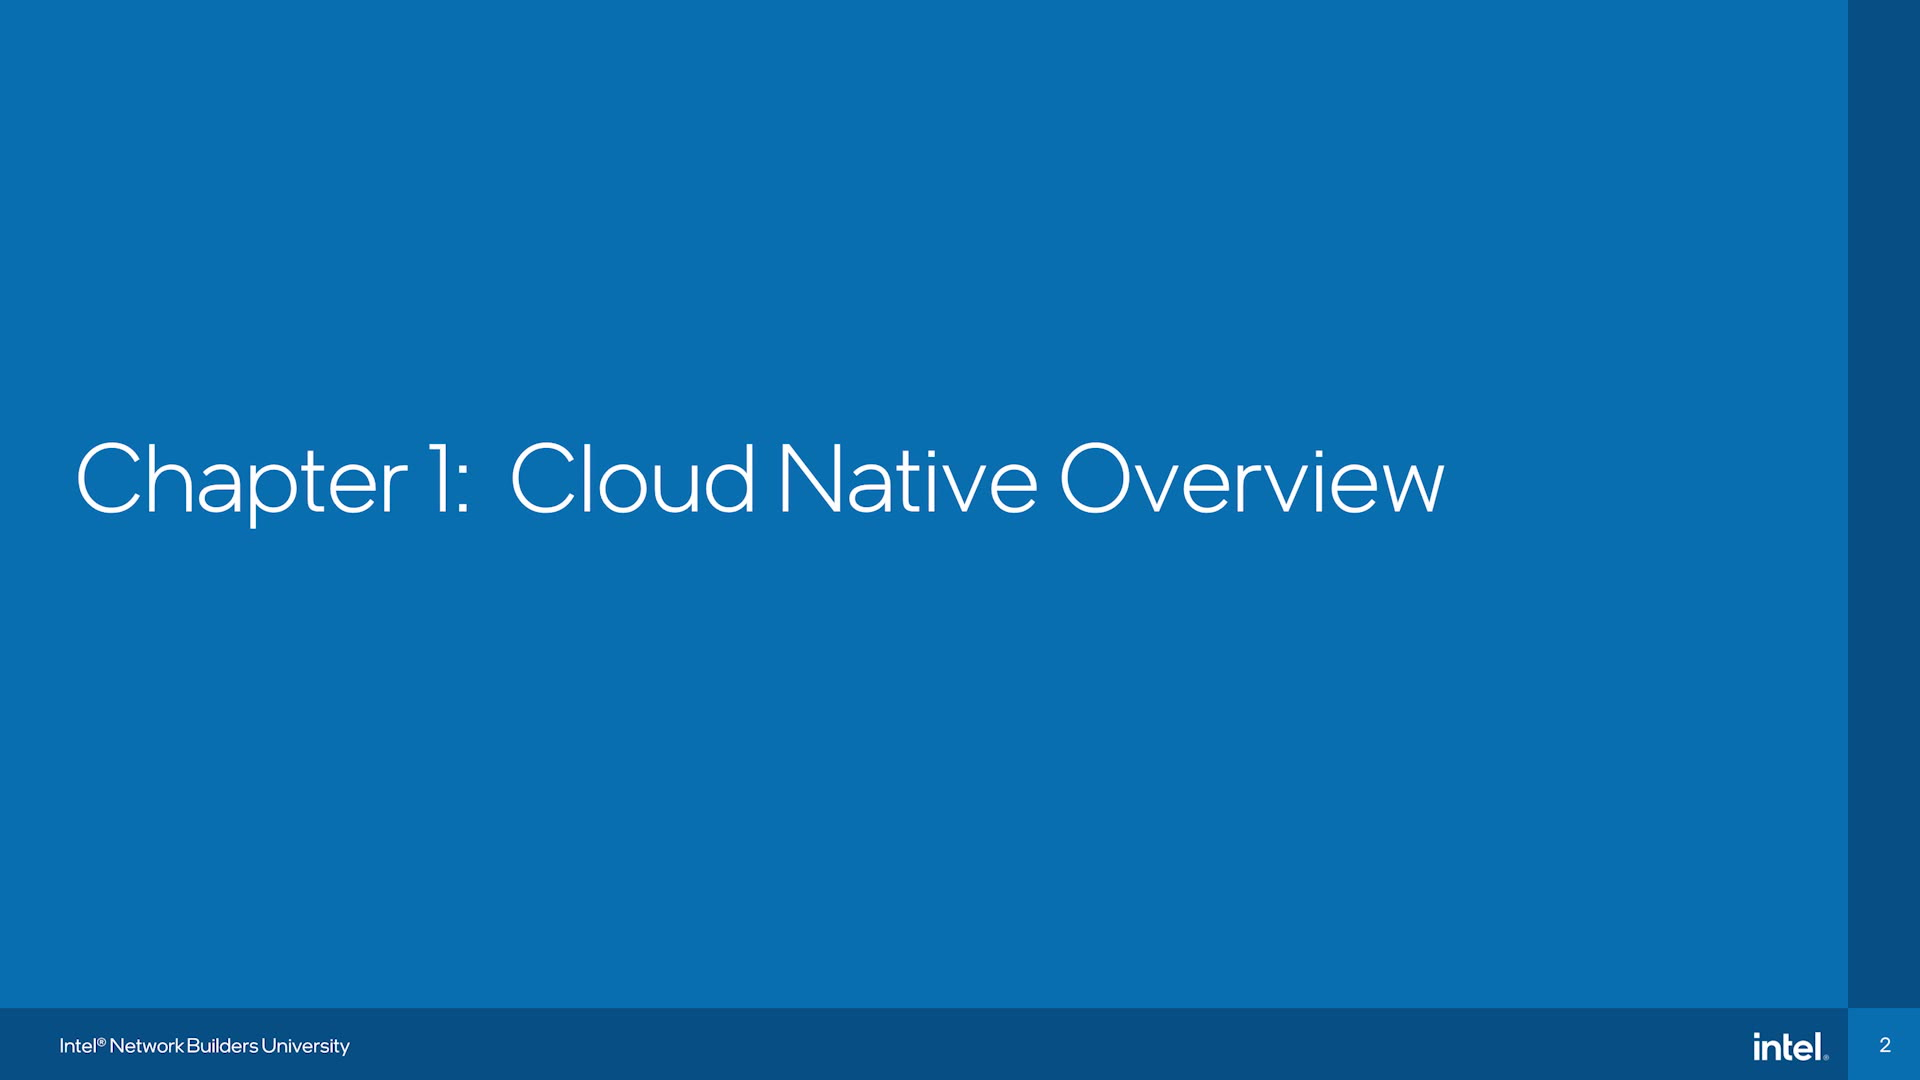 Chapter 1: Cloud Native Overview